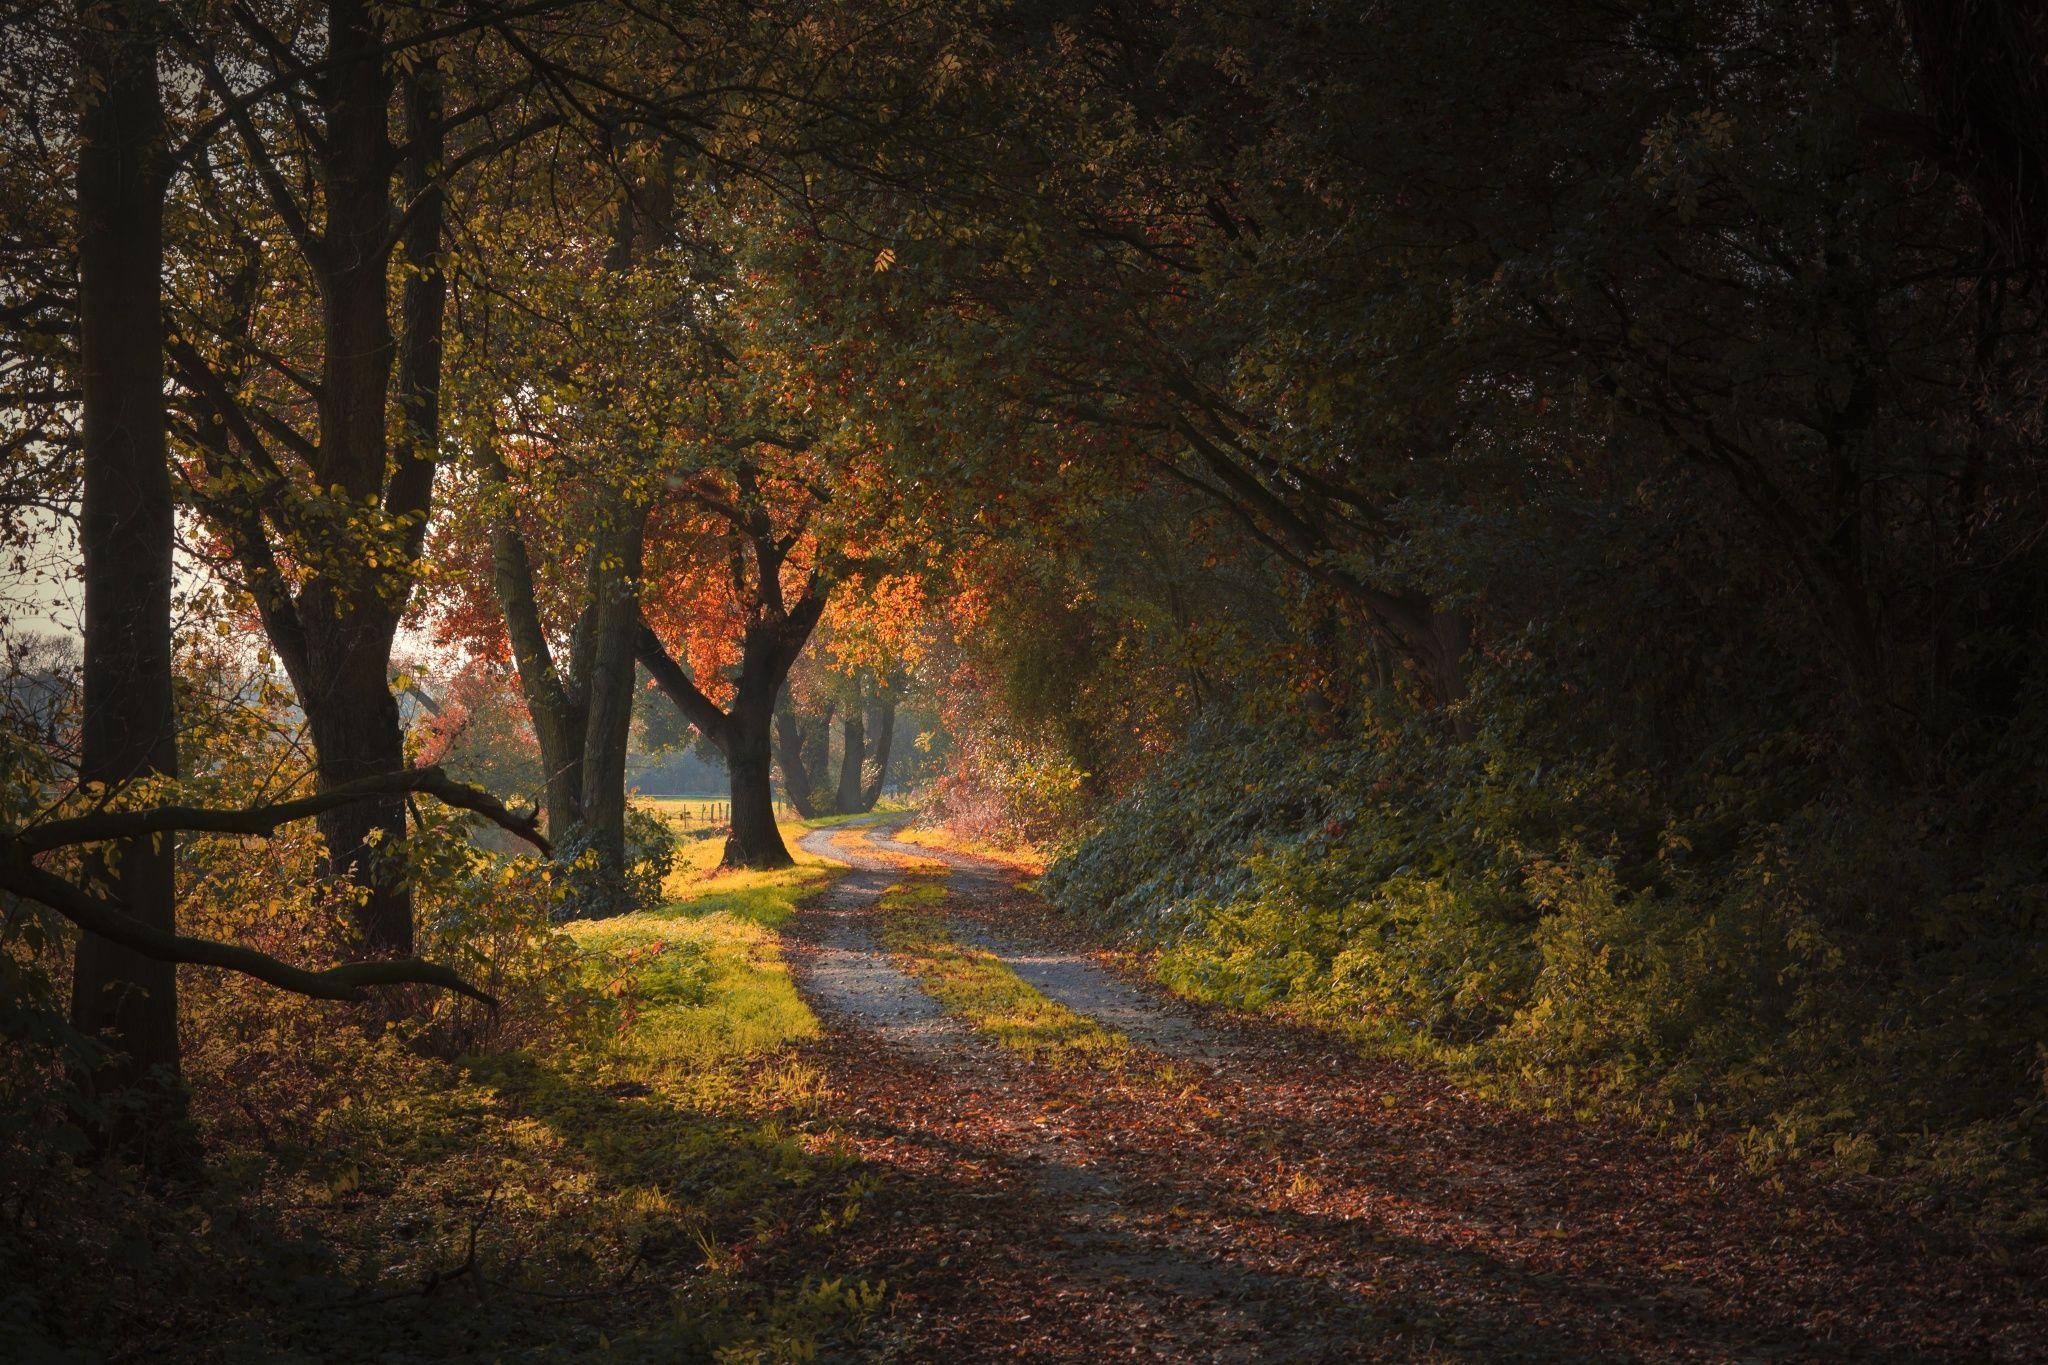 Path of Colors by Alex Kaßner on 500px